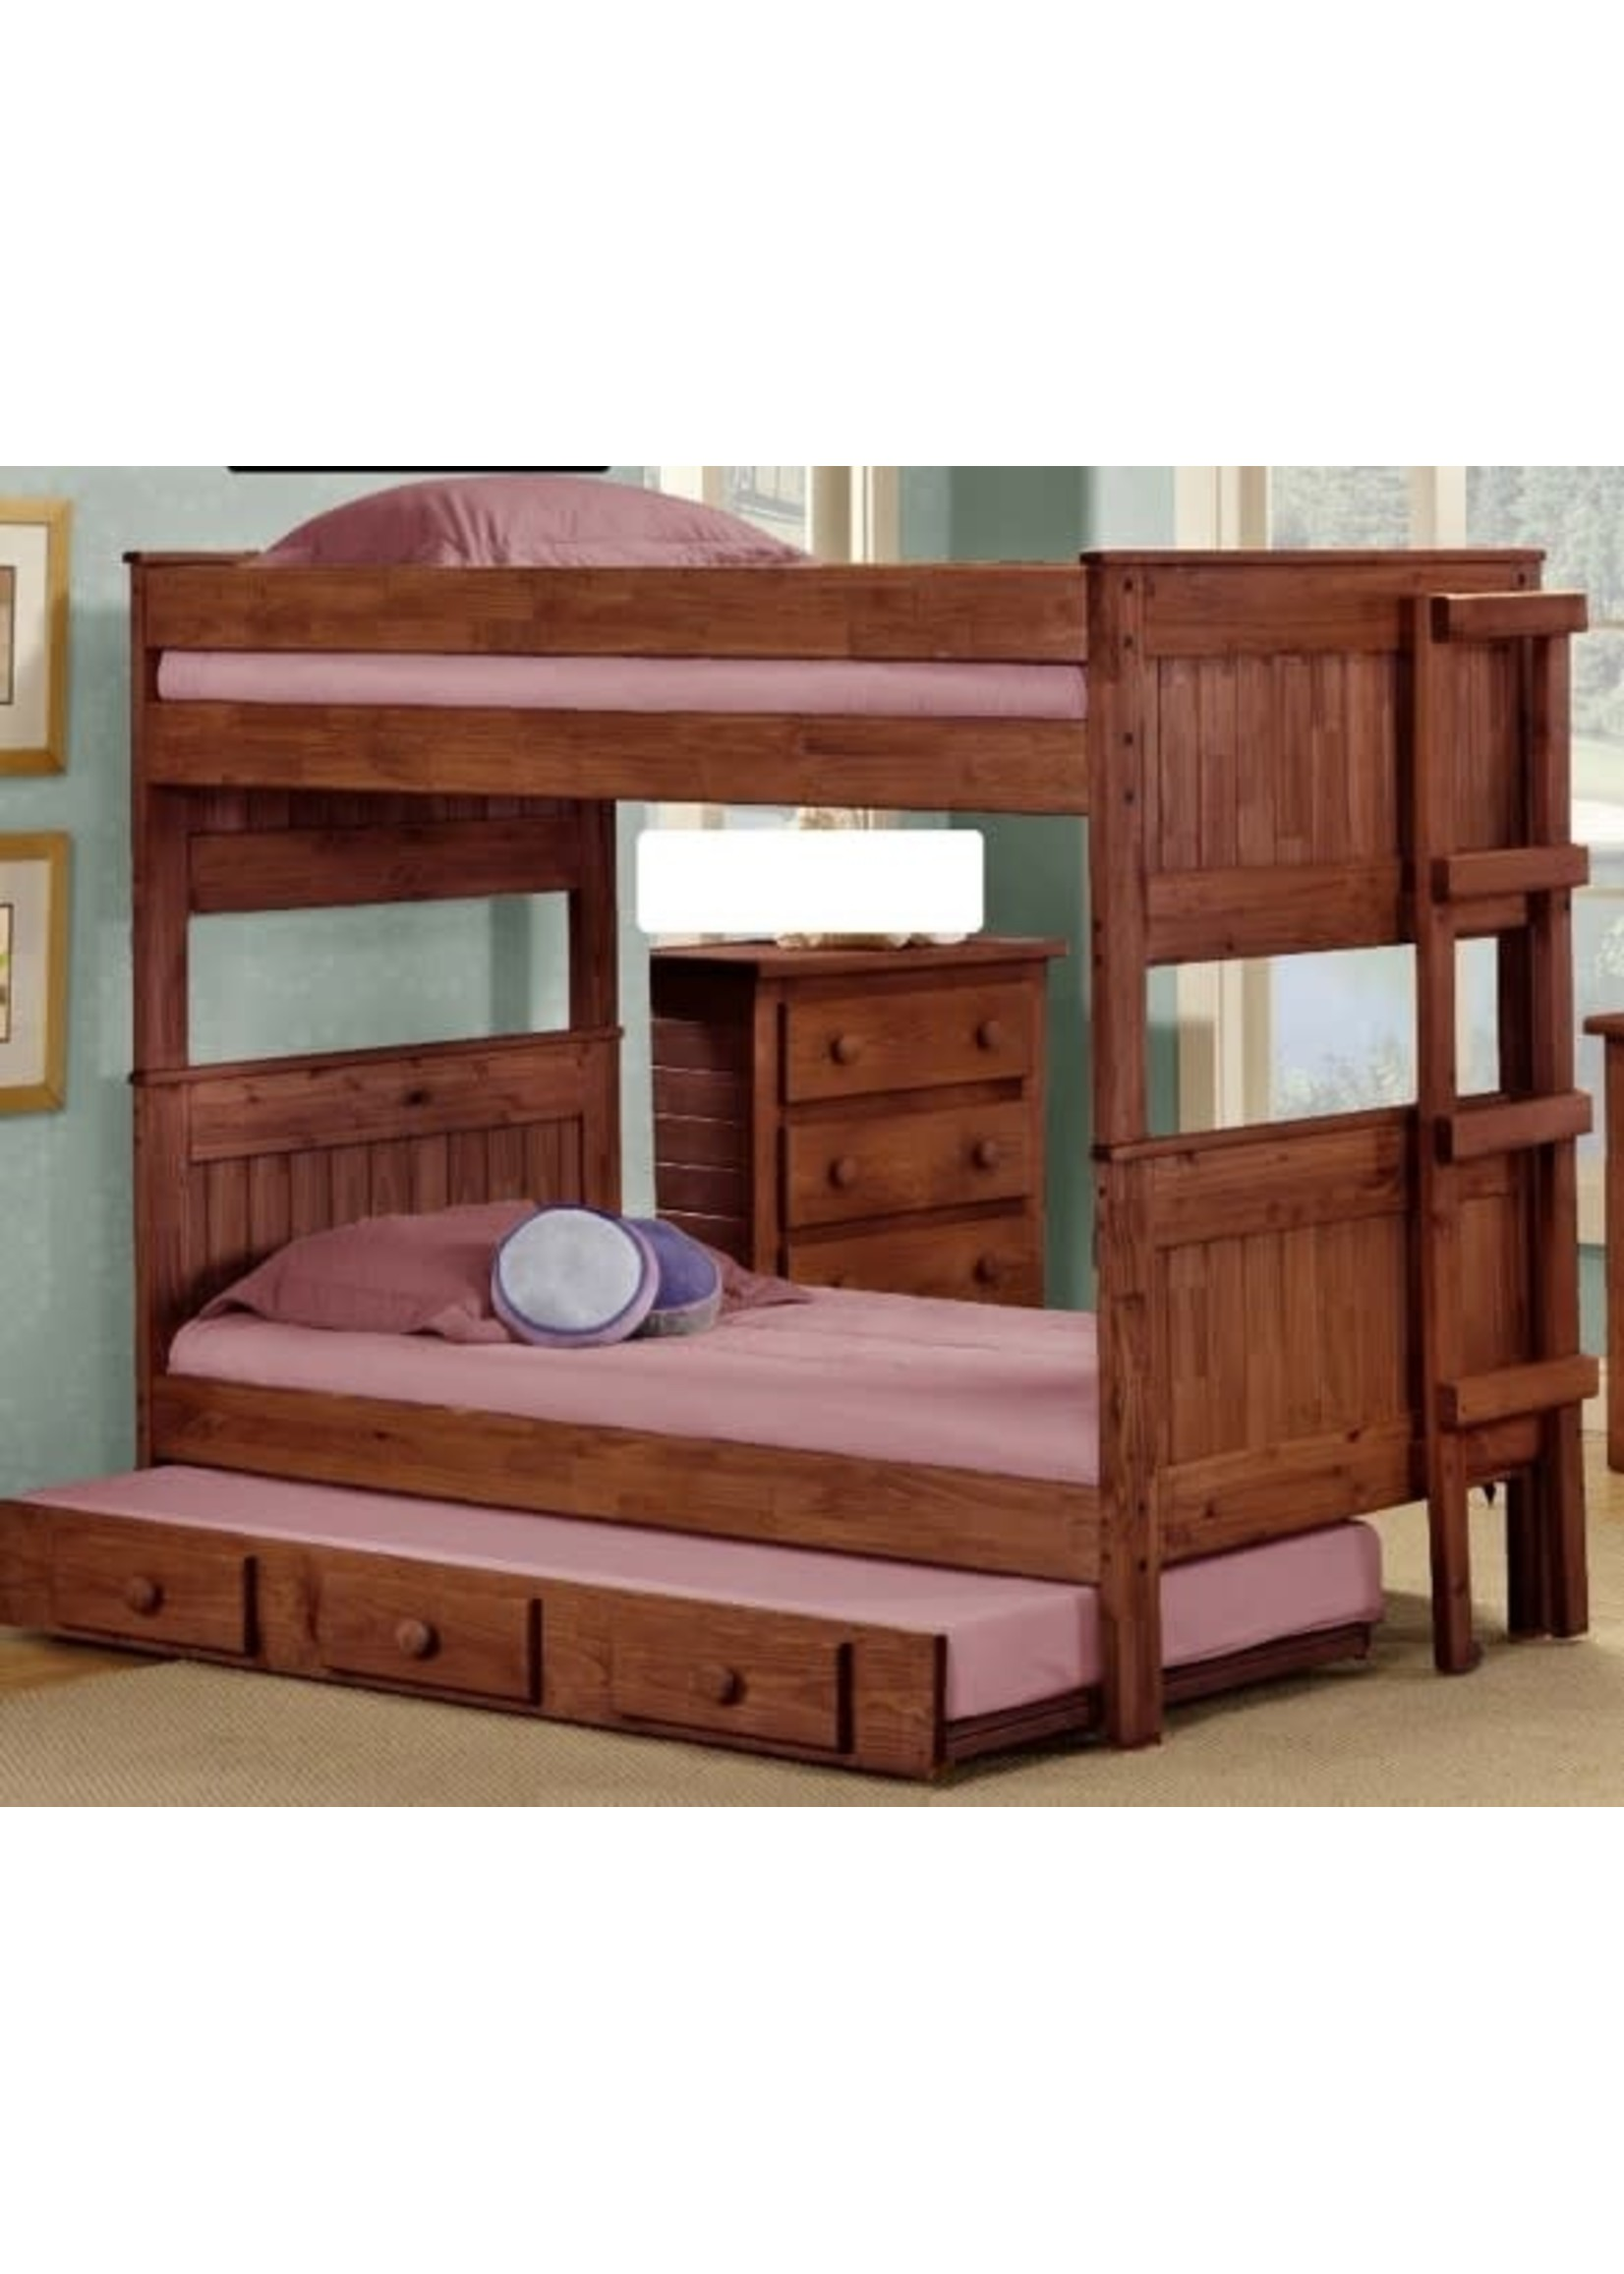 PINE CRAFTER 4013MAH 3/3 TWIN/TWIN STACKABLE BUNK BED MAHOGANY (TRUNDLE SEPERATE)